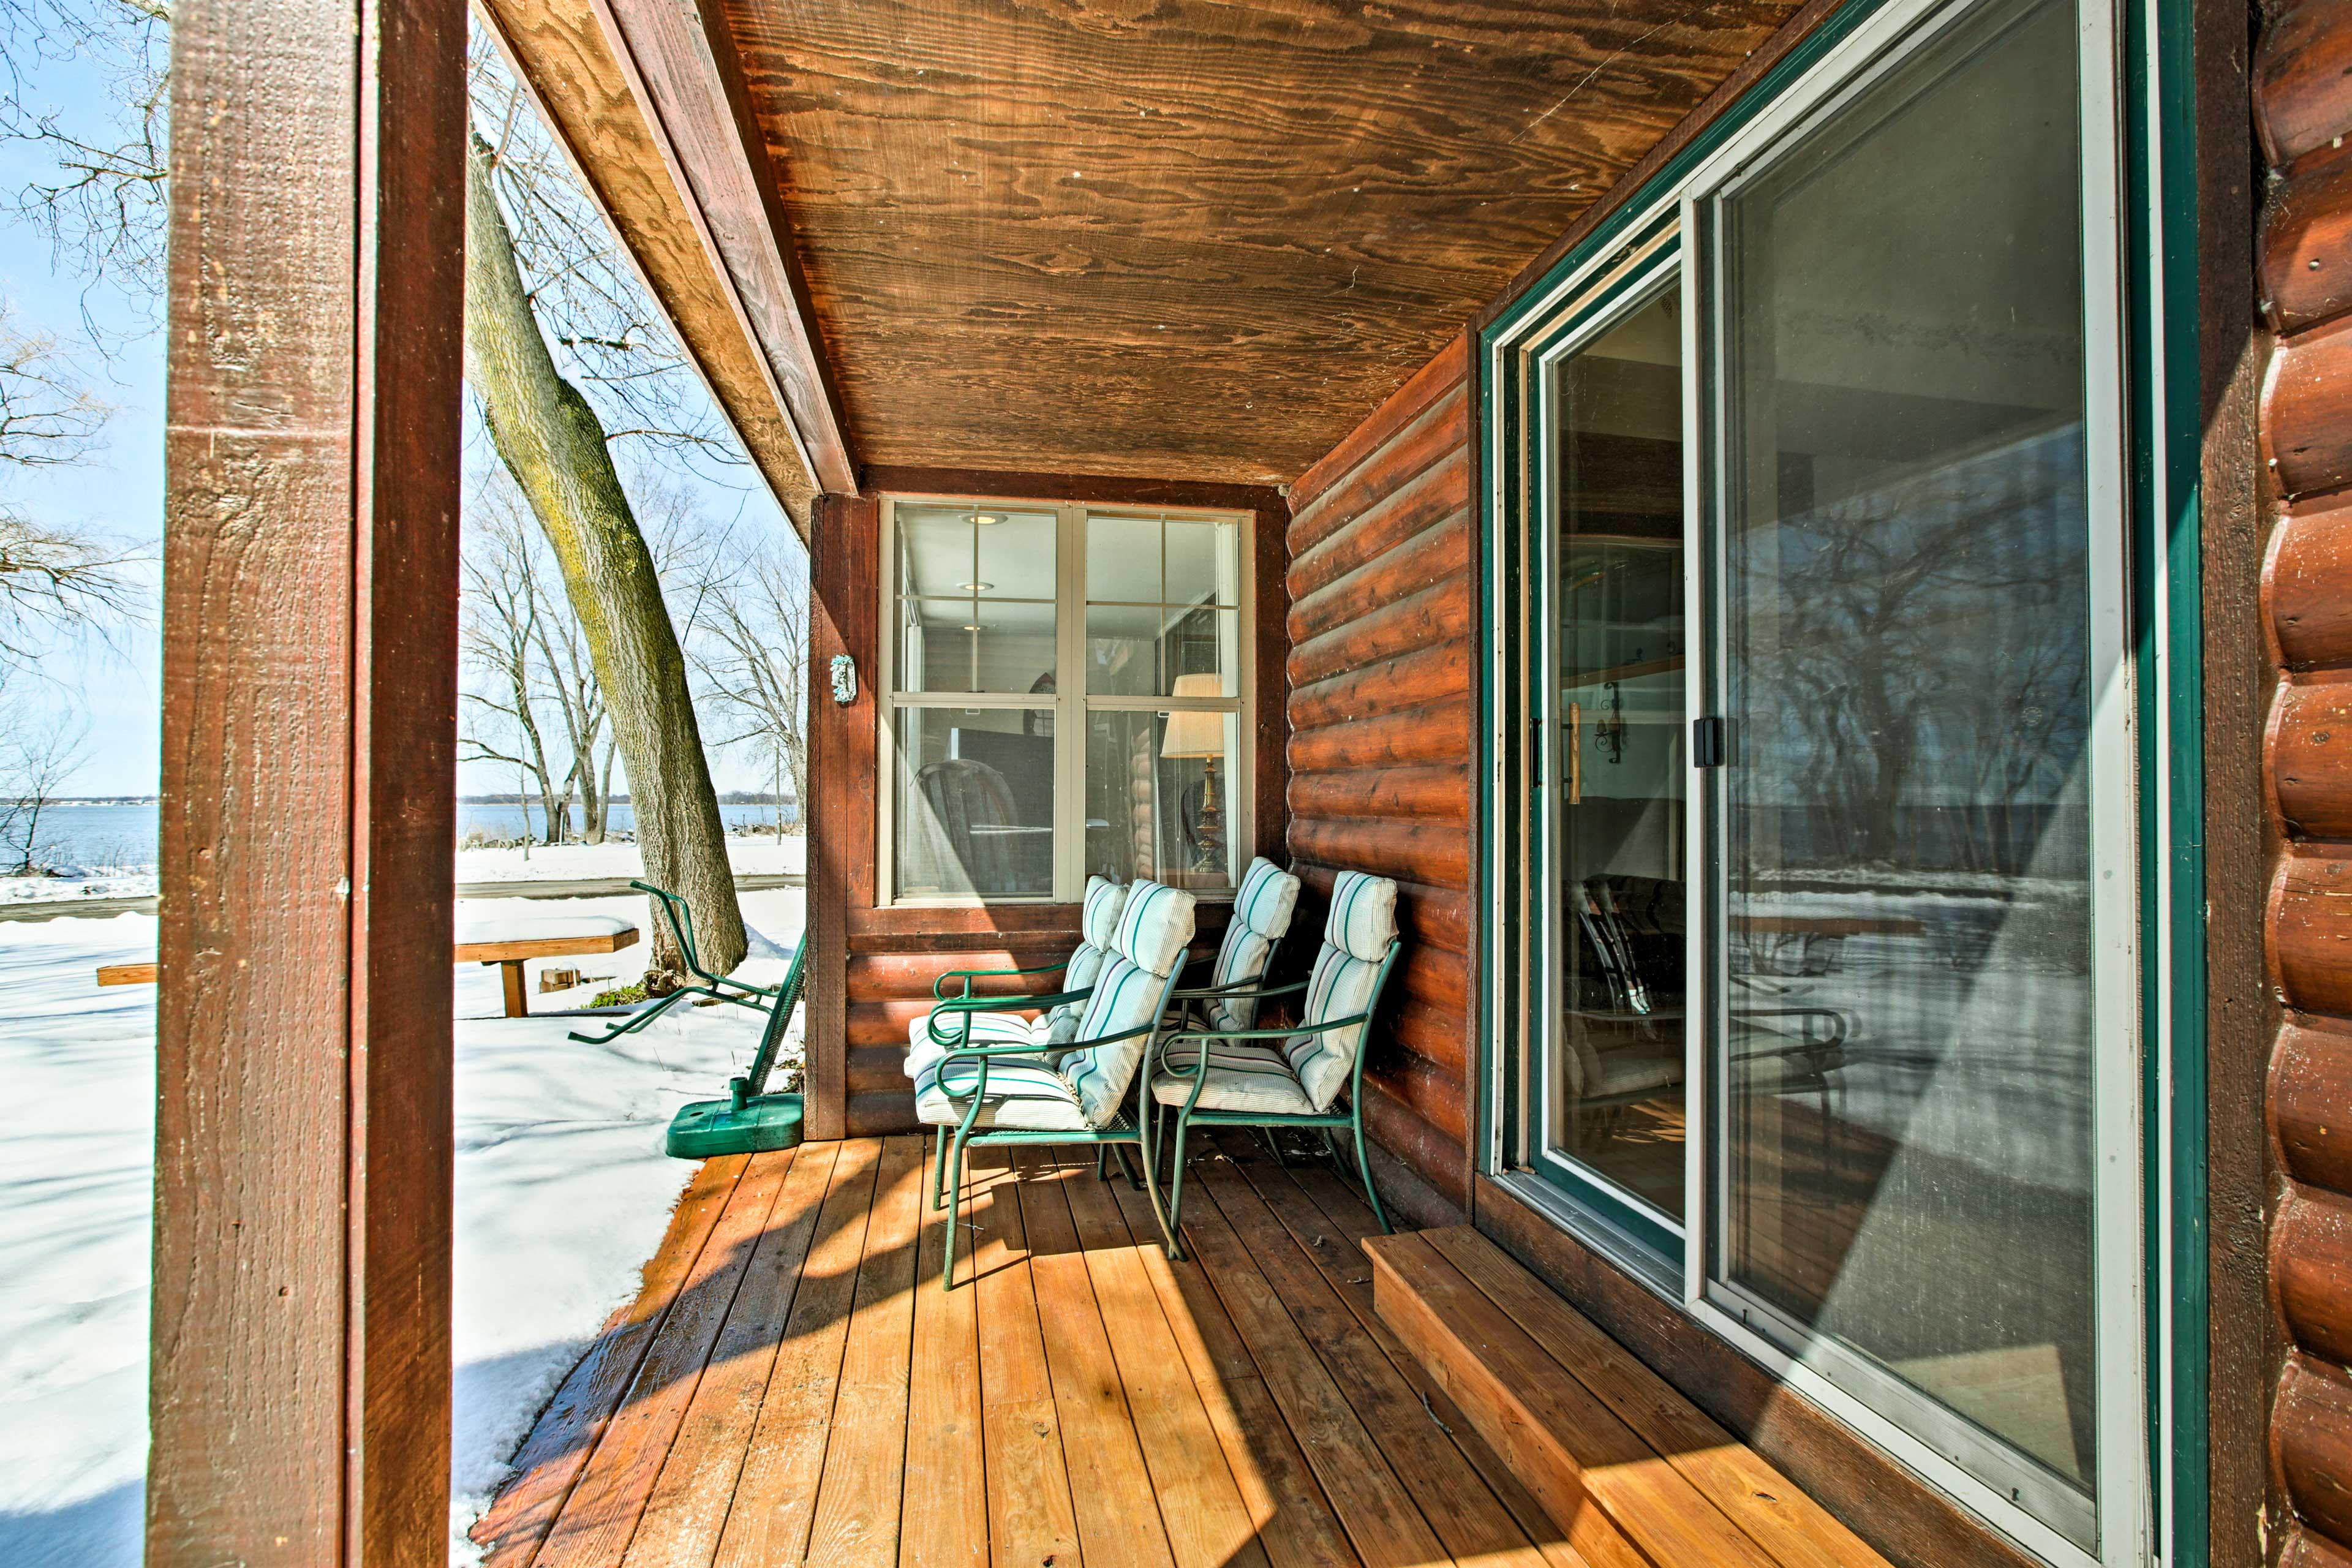 You will love the rustic charm of this lakefront unit.